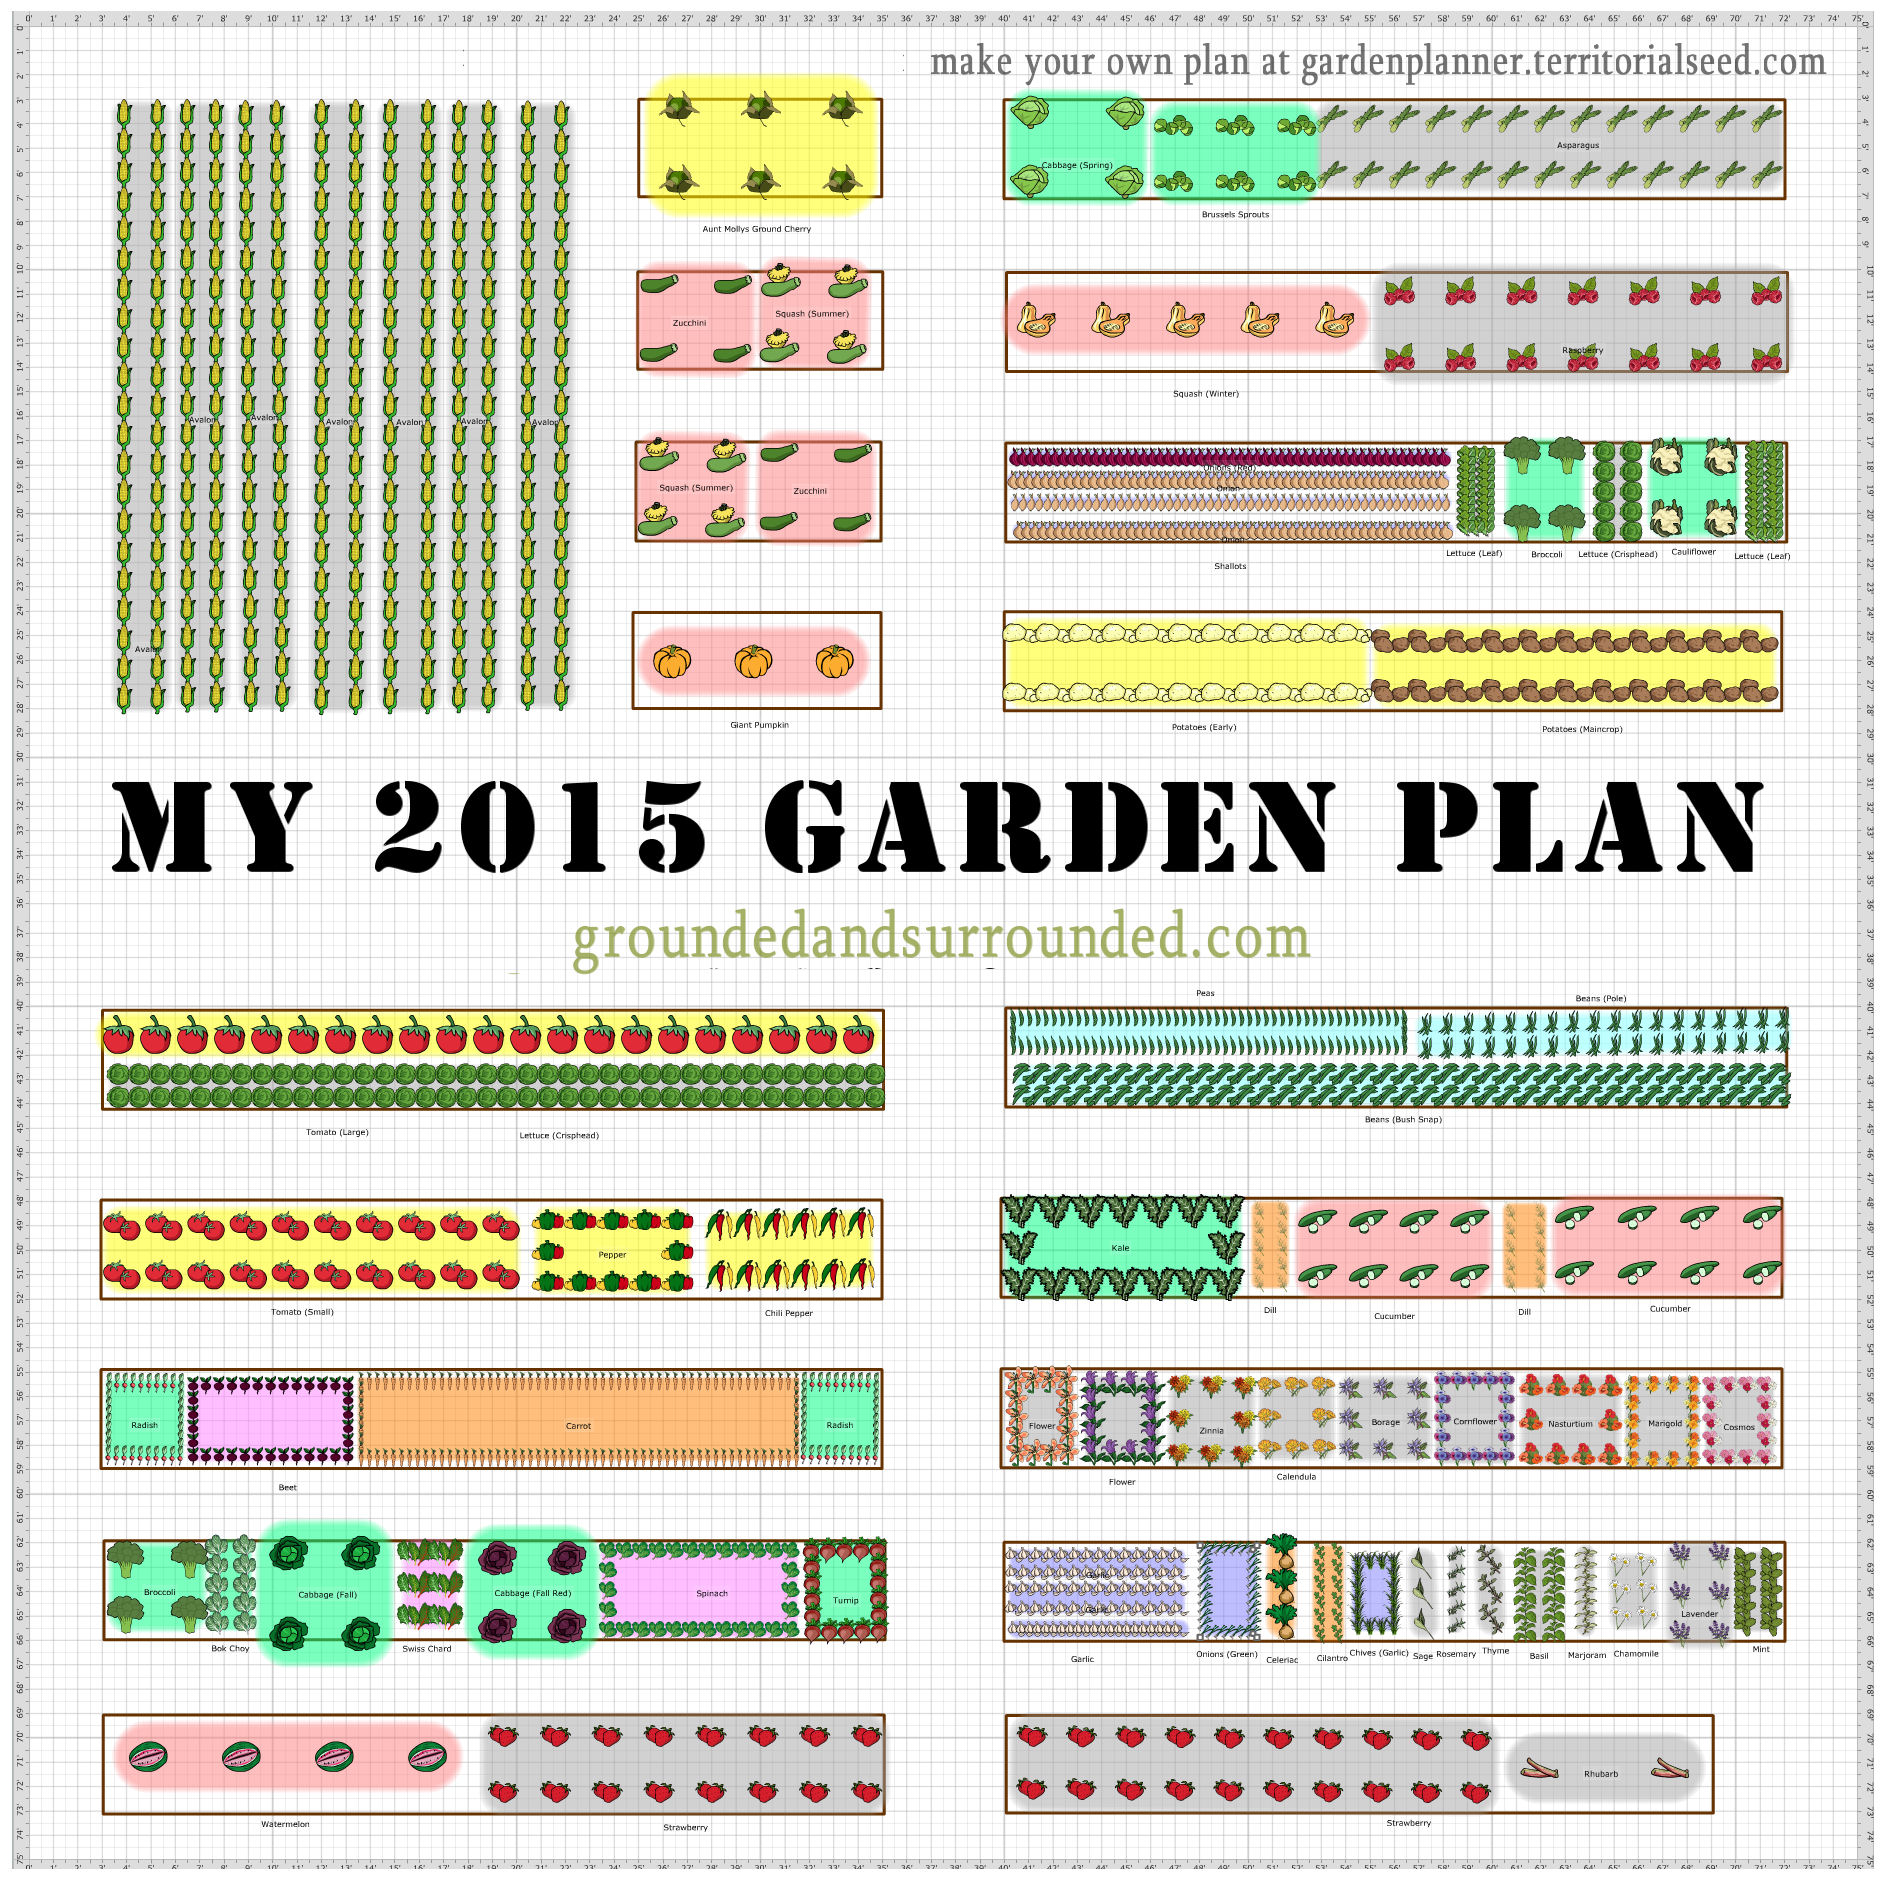 Vegetable Garden Design Layout my 5,000+ sq ft vegetable garden plan | grounded & surrounded